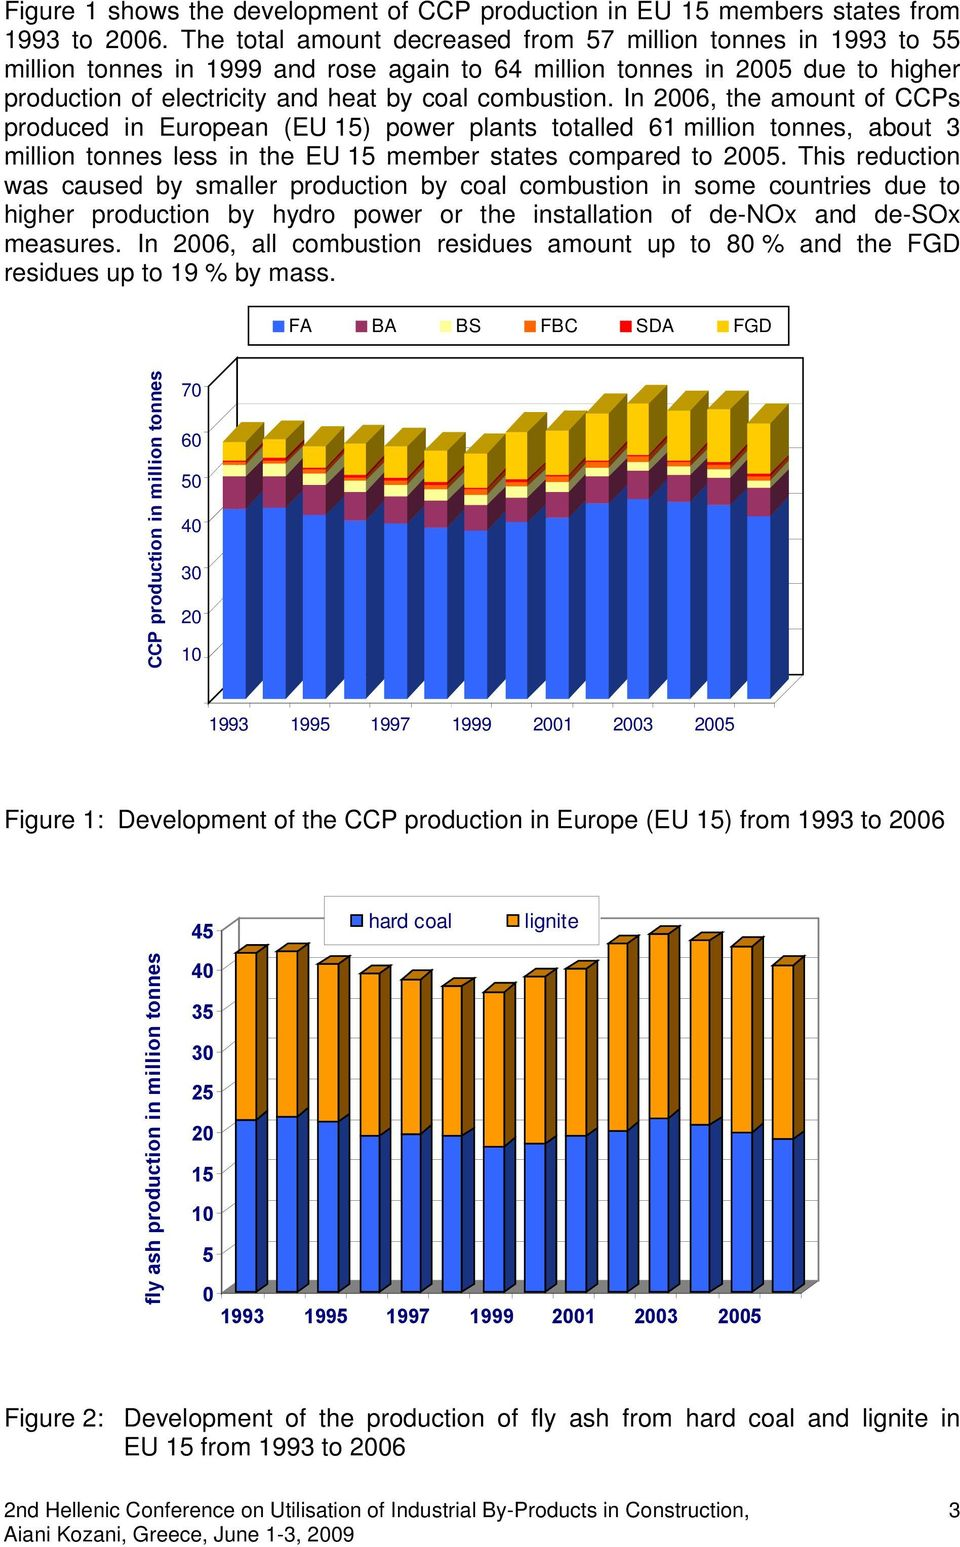 In 2006, the amount of CCPs produced in European (EU 15) power plants totalled 61 million tonnes, about 3 million tonnes less in the EU 15 member states compared to 2005.